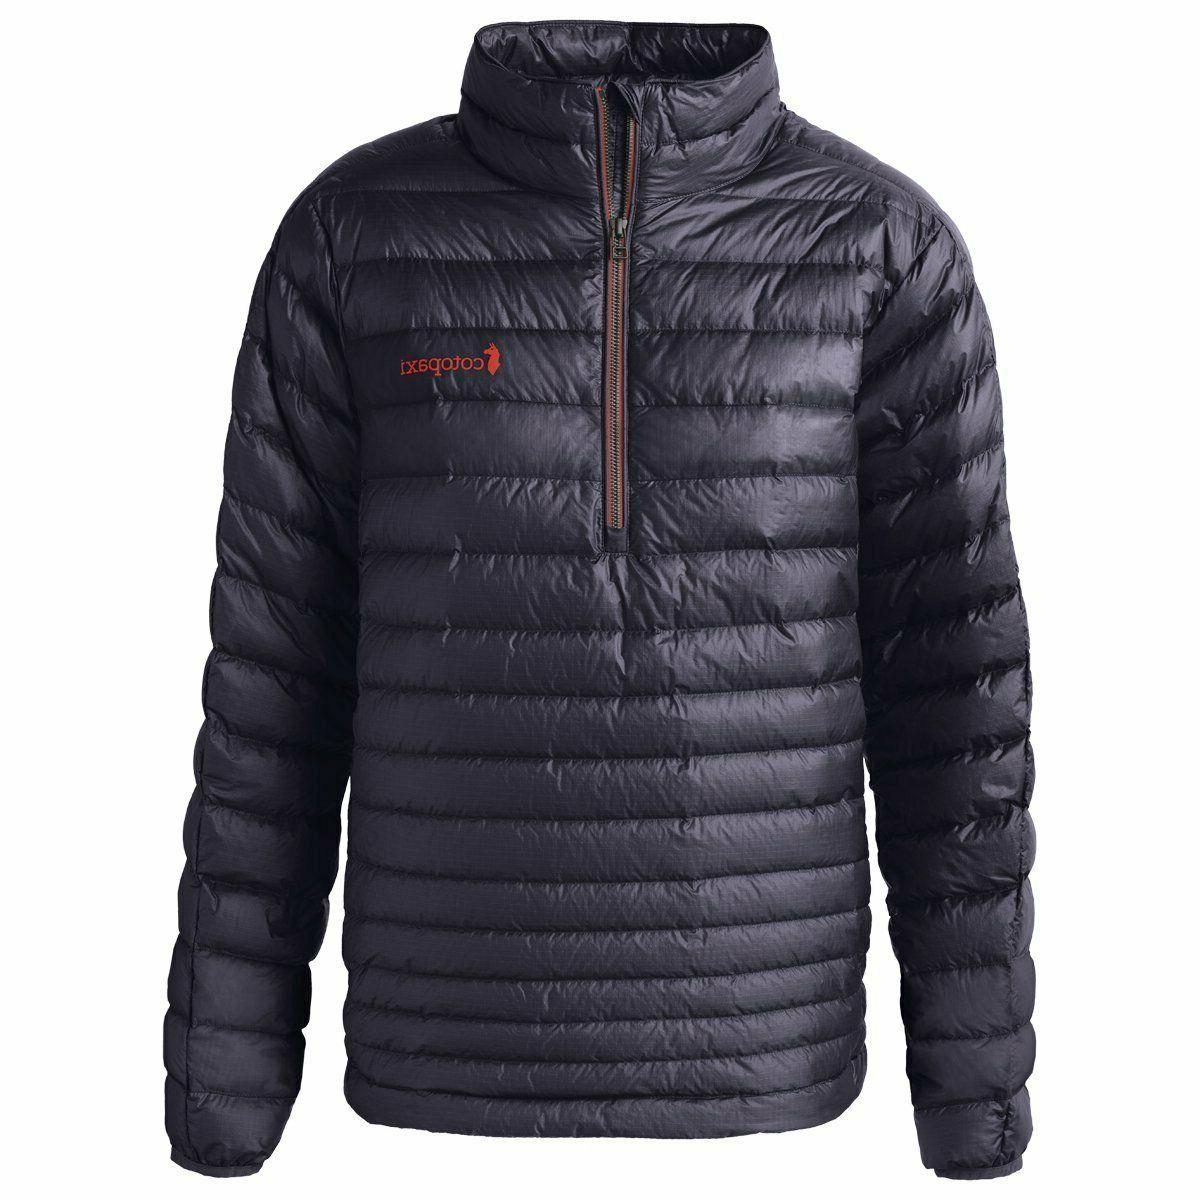 NWOT Cotopaxi Fuego Down Jacket Pullover Coat